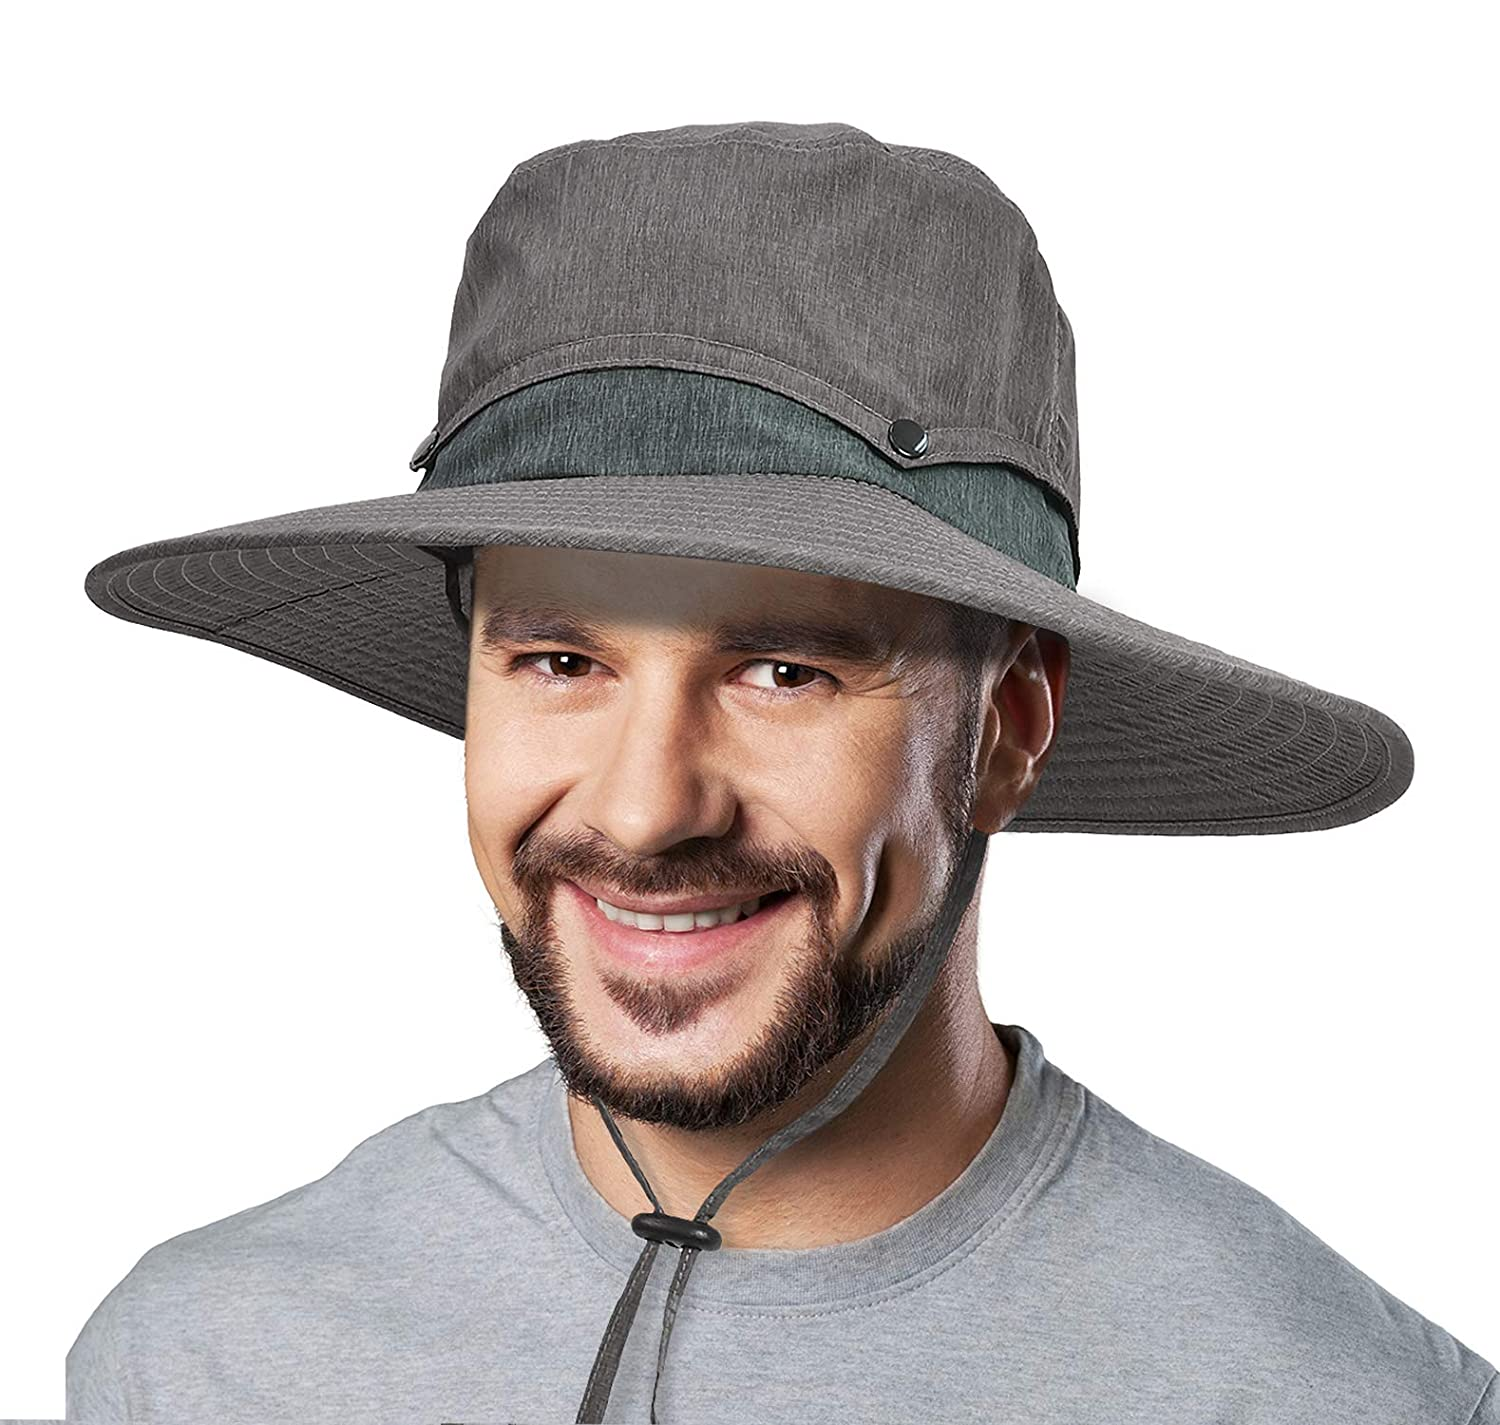 Atphfety Wide Brim Fishing Sun Hat Summer Outdoor UV Sun Protection Fishing Cap Neck Face Flap Hat for Man, Women, Backpacking, Garden, Hunting